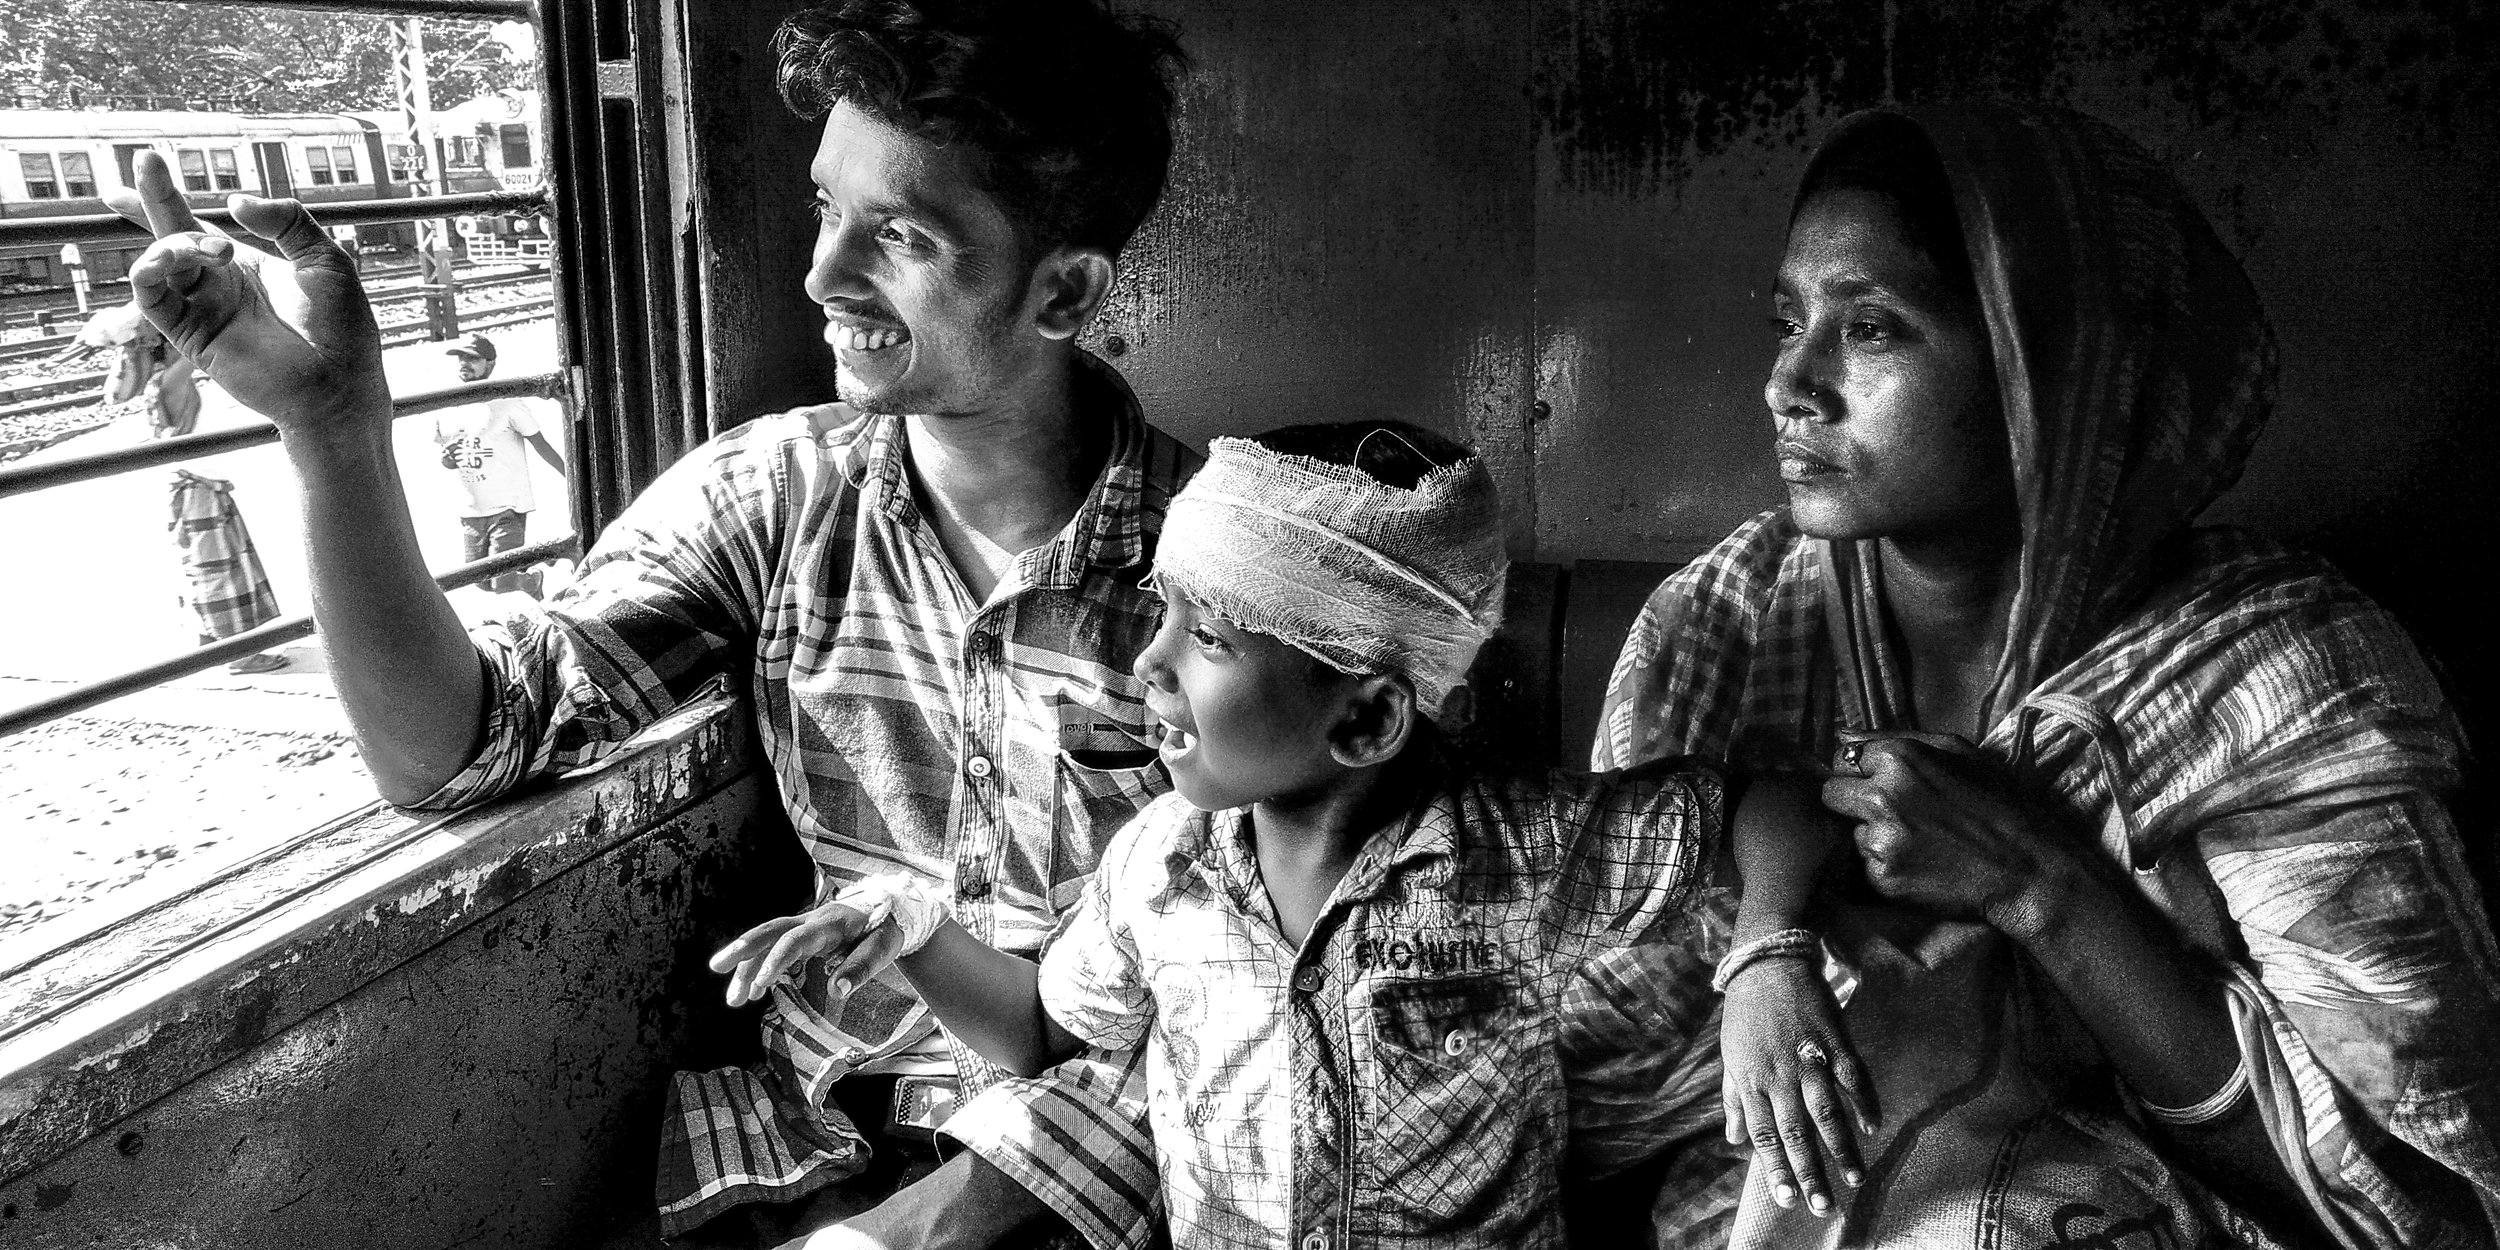 A father his showing his little boy something interesting outside the window and they are sharing the laughter. This family was sitting front of my sit in the Canning Local Train. The little boy is suffering in Head injury. Dad was very worried, but the boy was looking at his father's face occasionally, the father was showing at various funny gestures showing him trees or other trains Date: 13 September, 2018